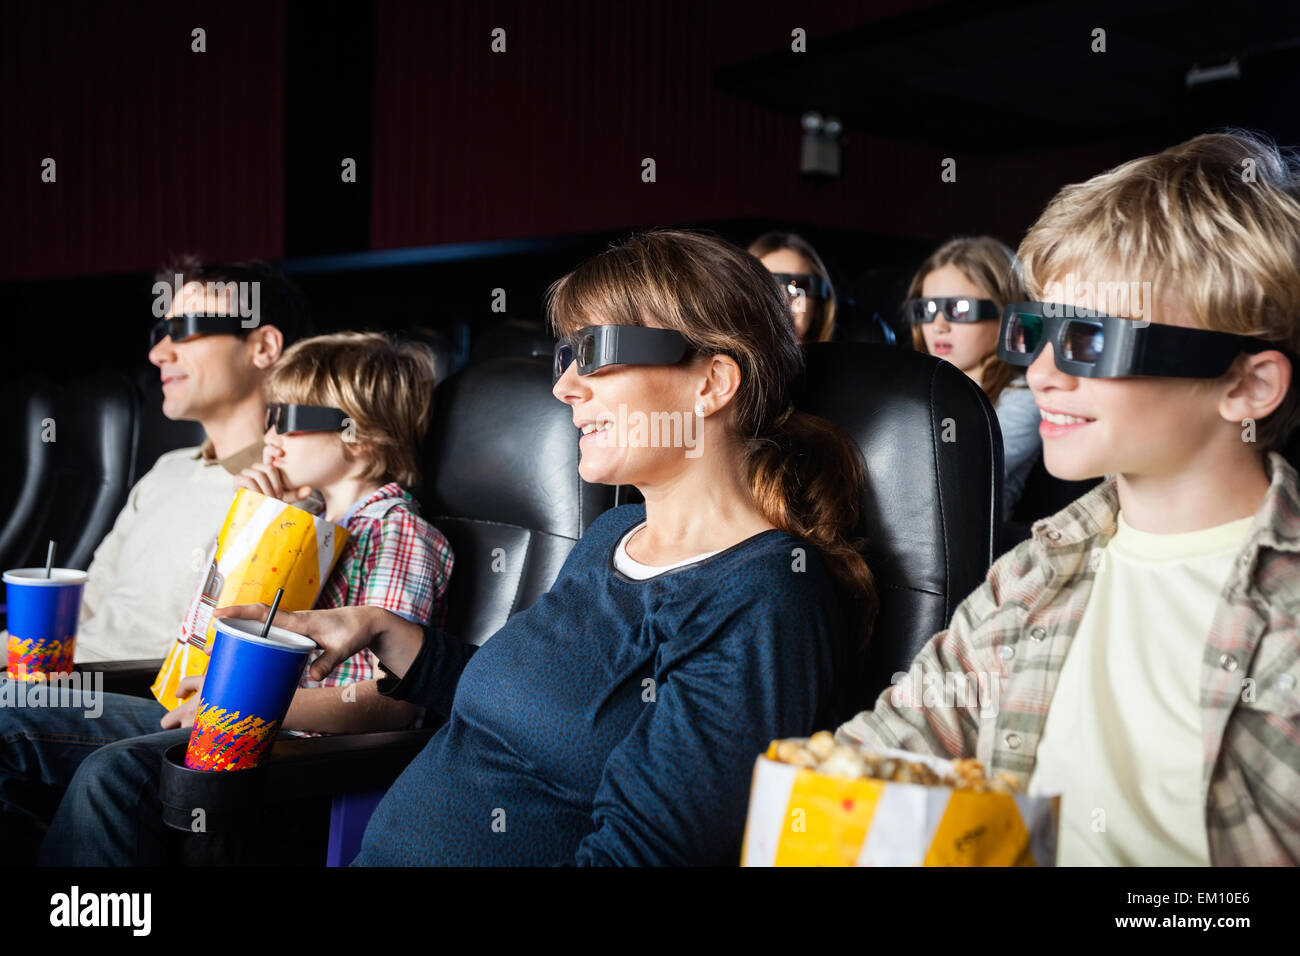 Smiling Families Watching 3D Movie In Theater - Stock Image